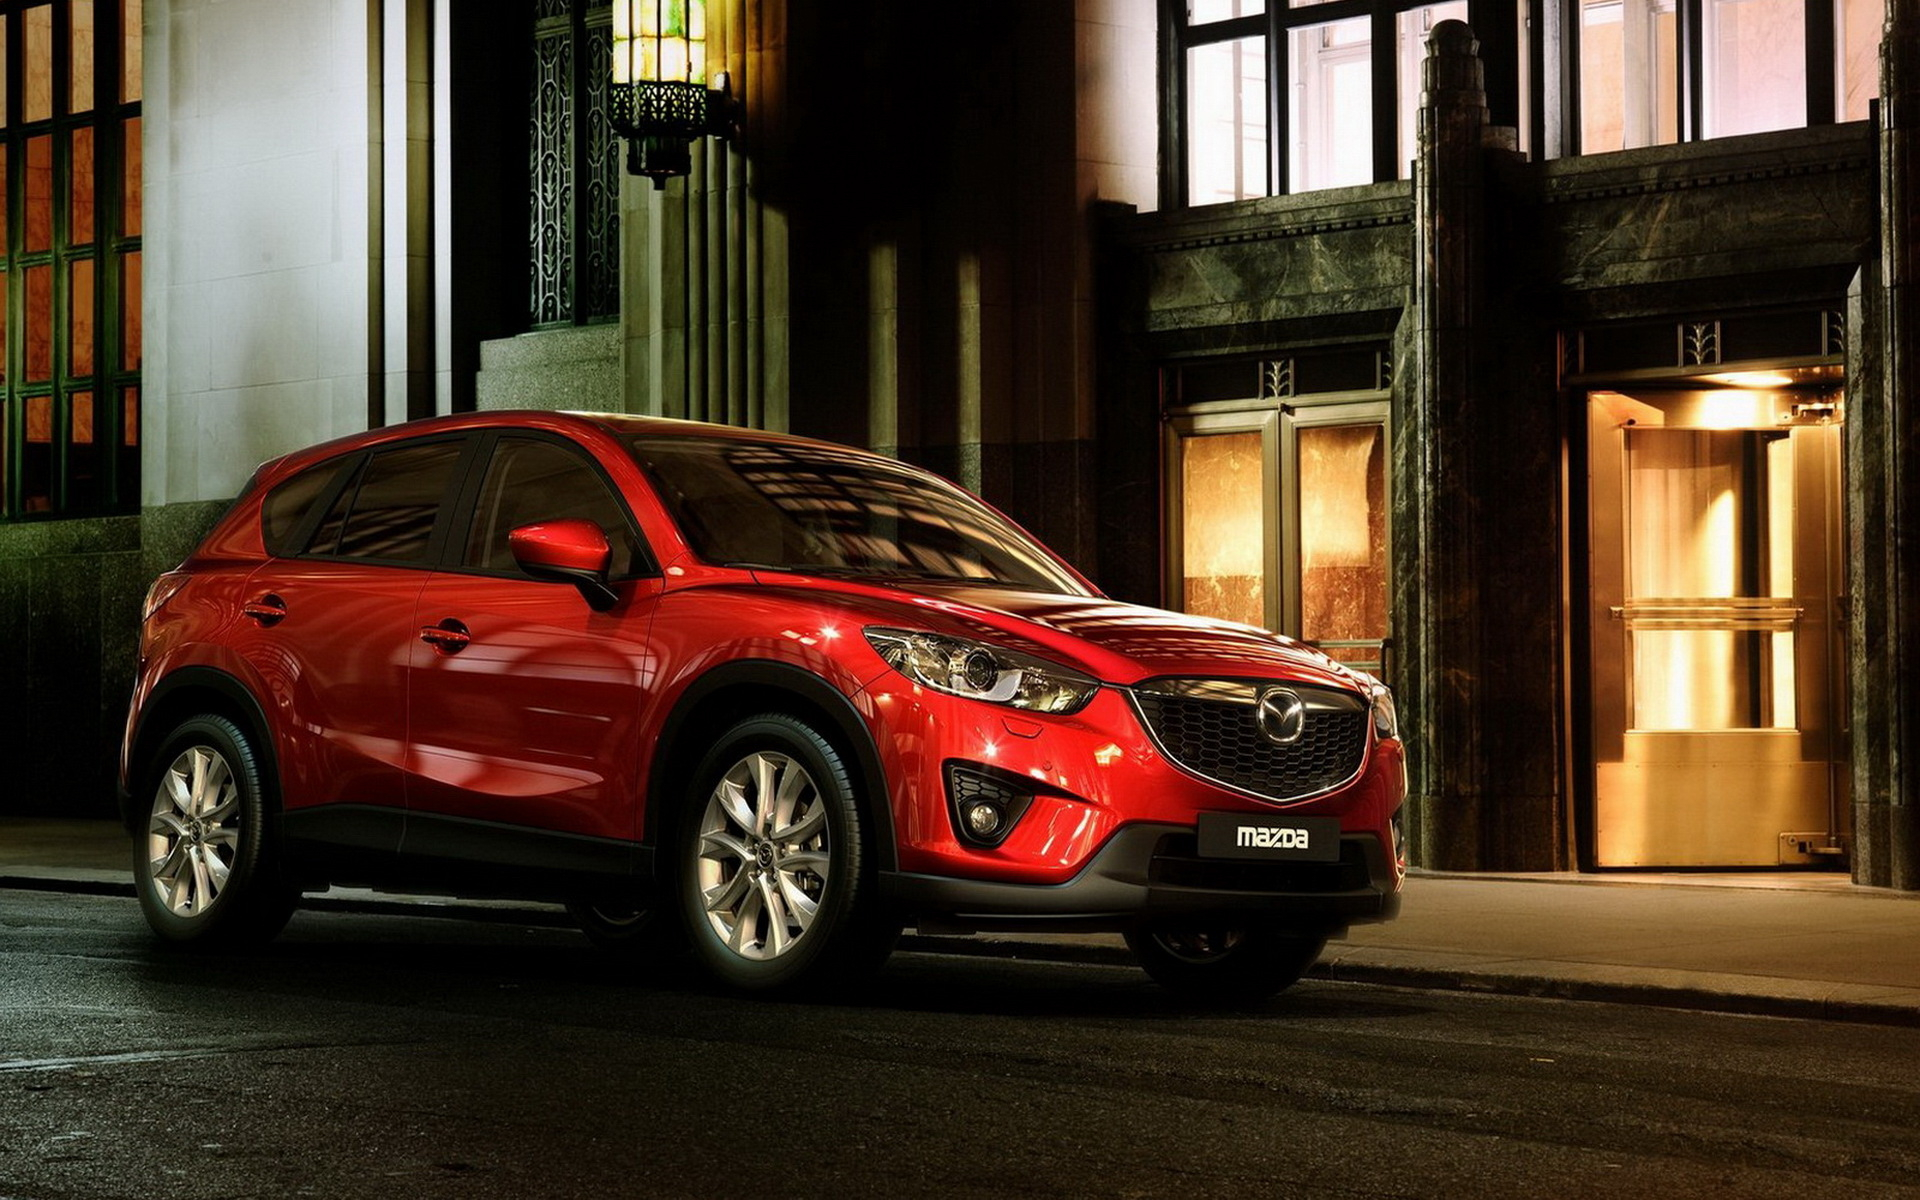 mazda cx 5 hq wallpapers full hd pictures. Black Bedroom Furniture Sets. Home Design Ideas